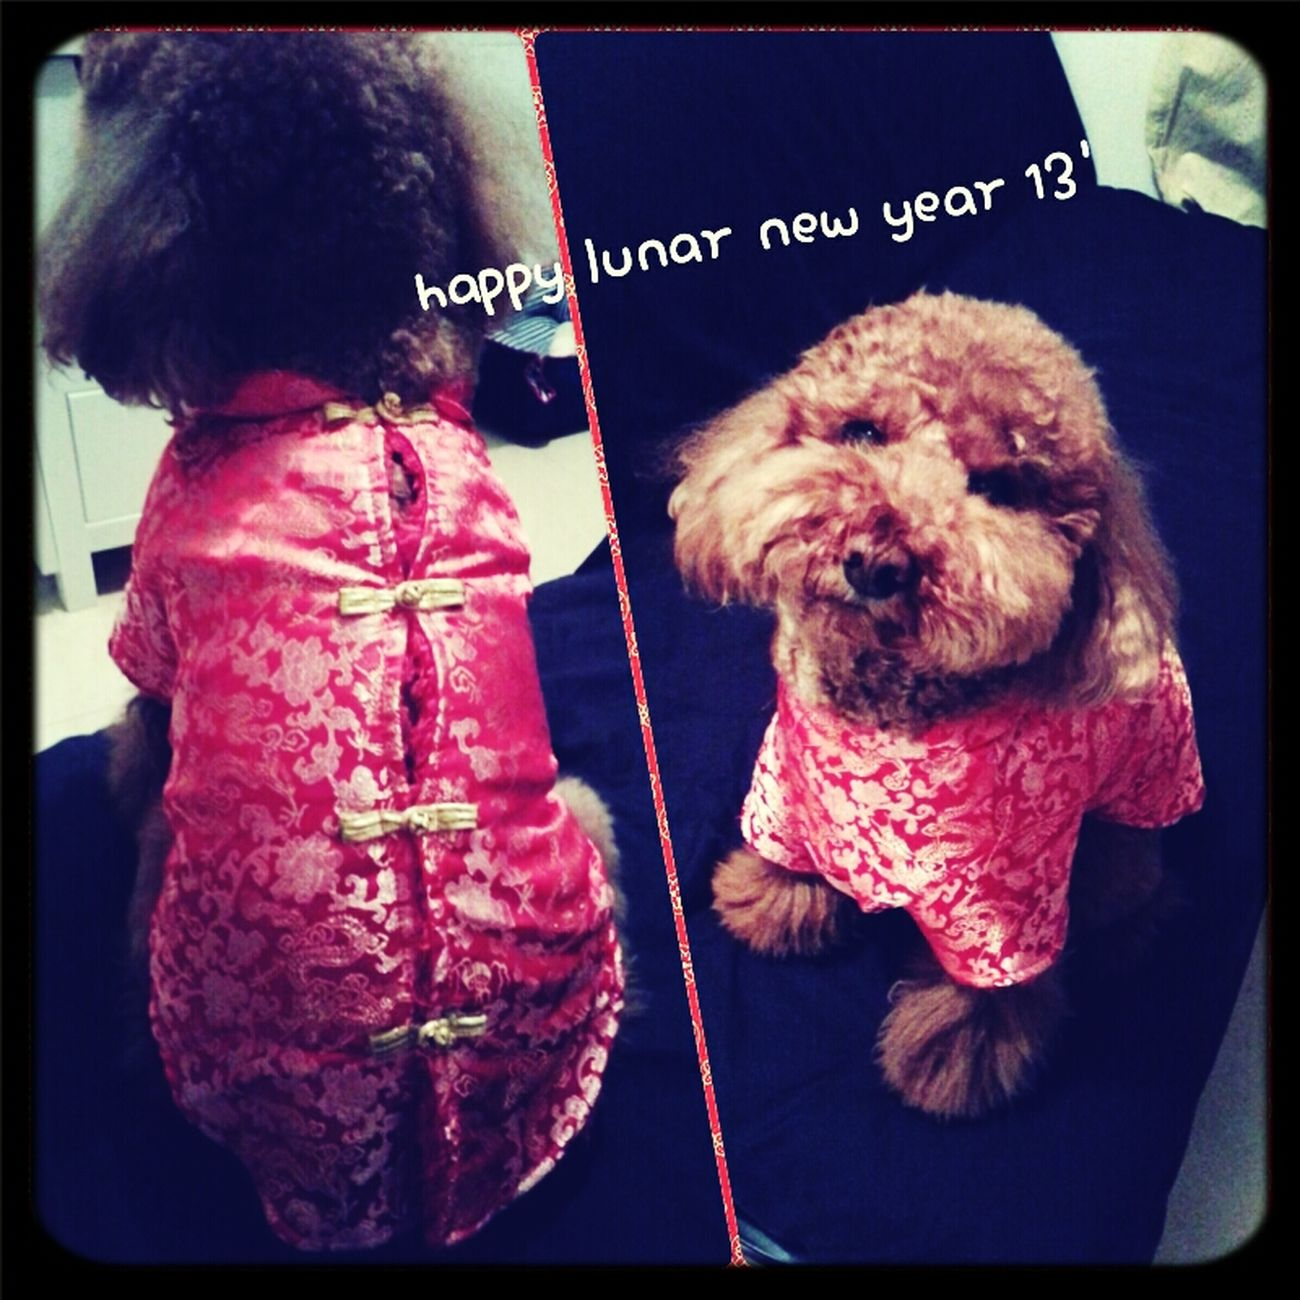 Bb: Happy Lunar New Year